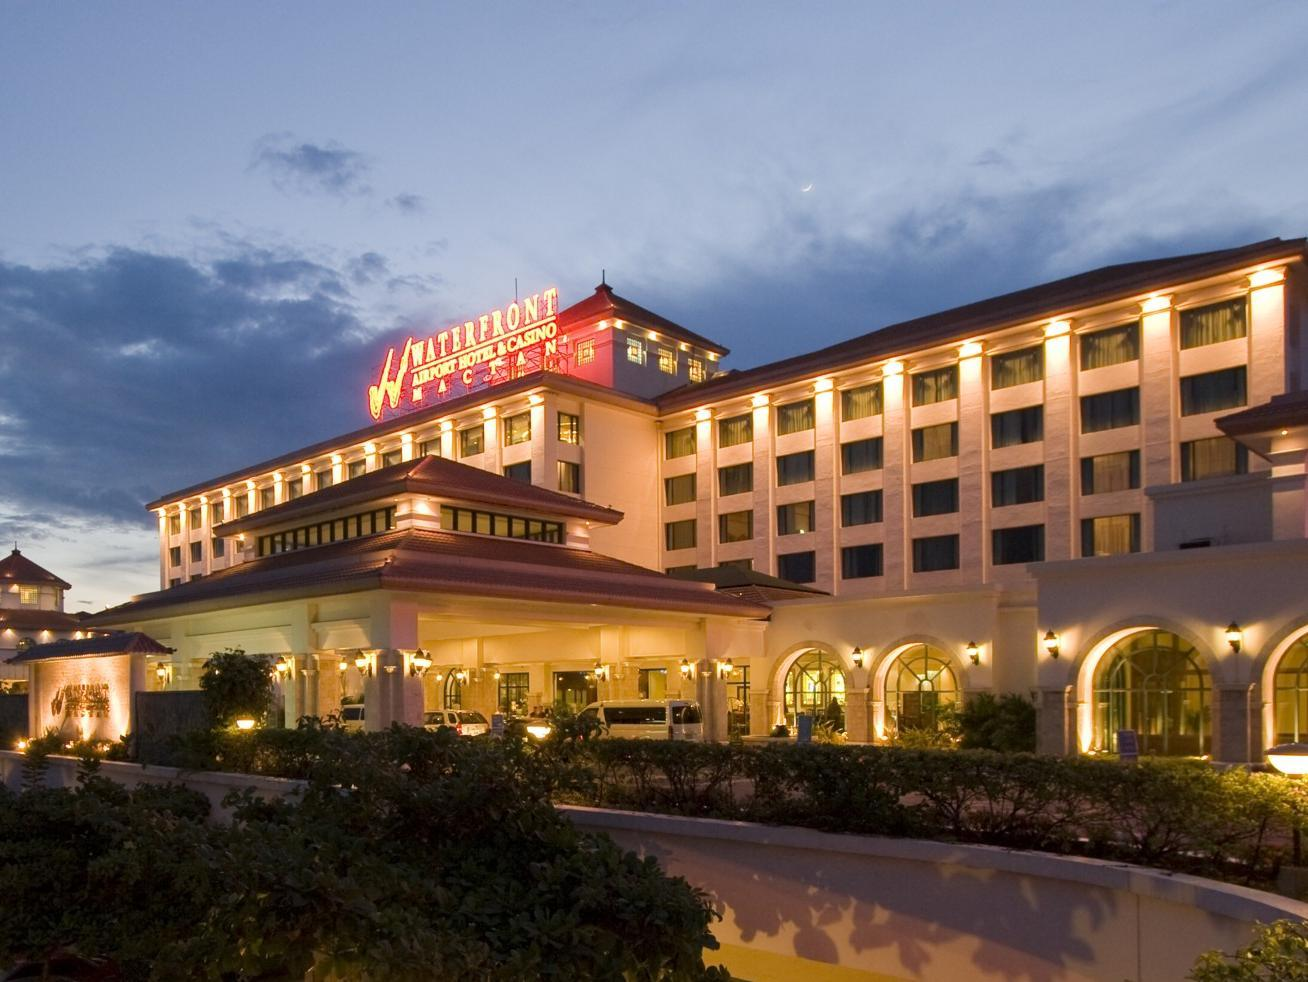 Waterfront Airport Hotel and Casino Cebu - Esterno dell'Hotel